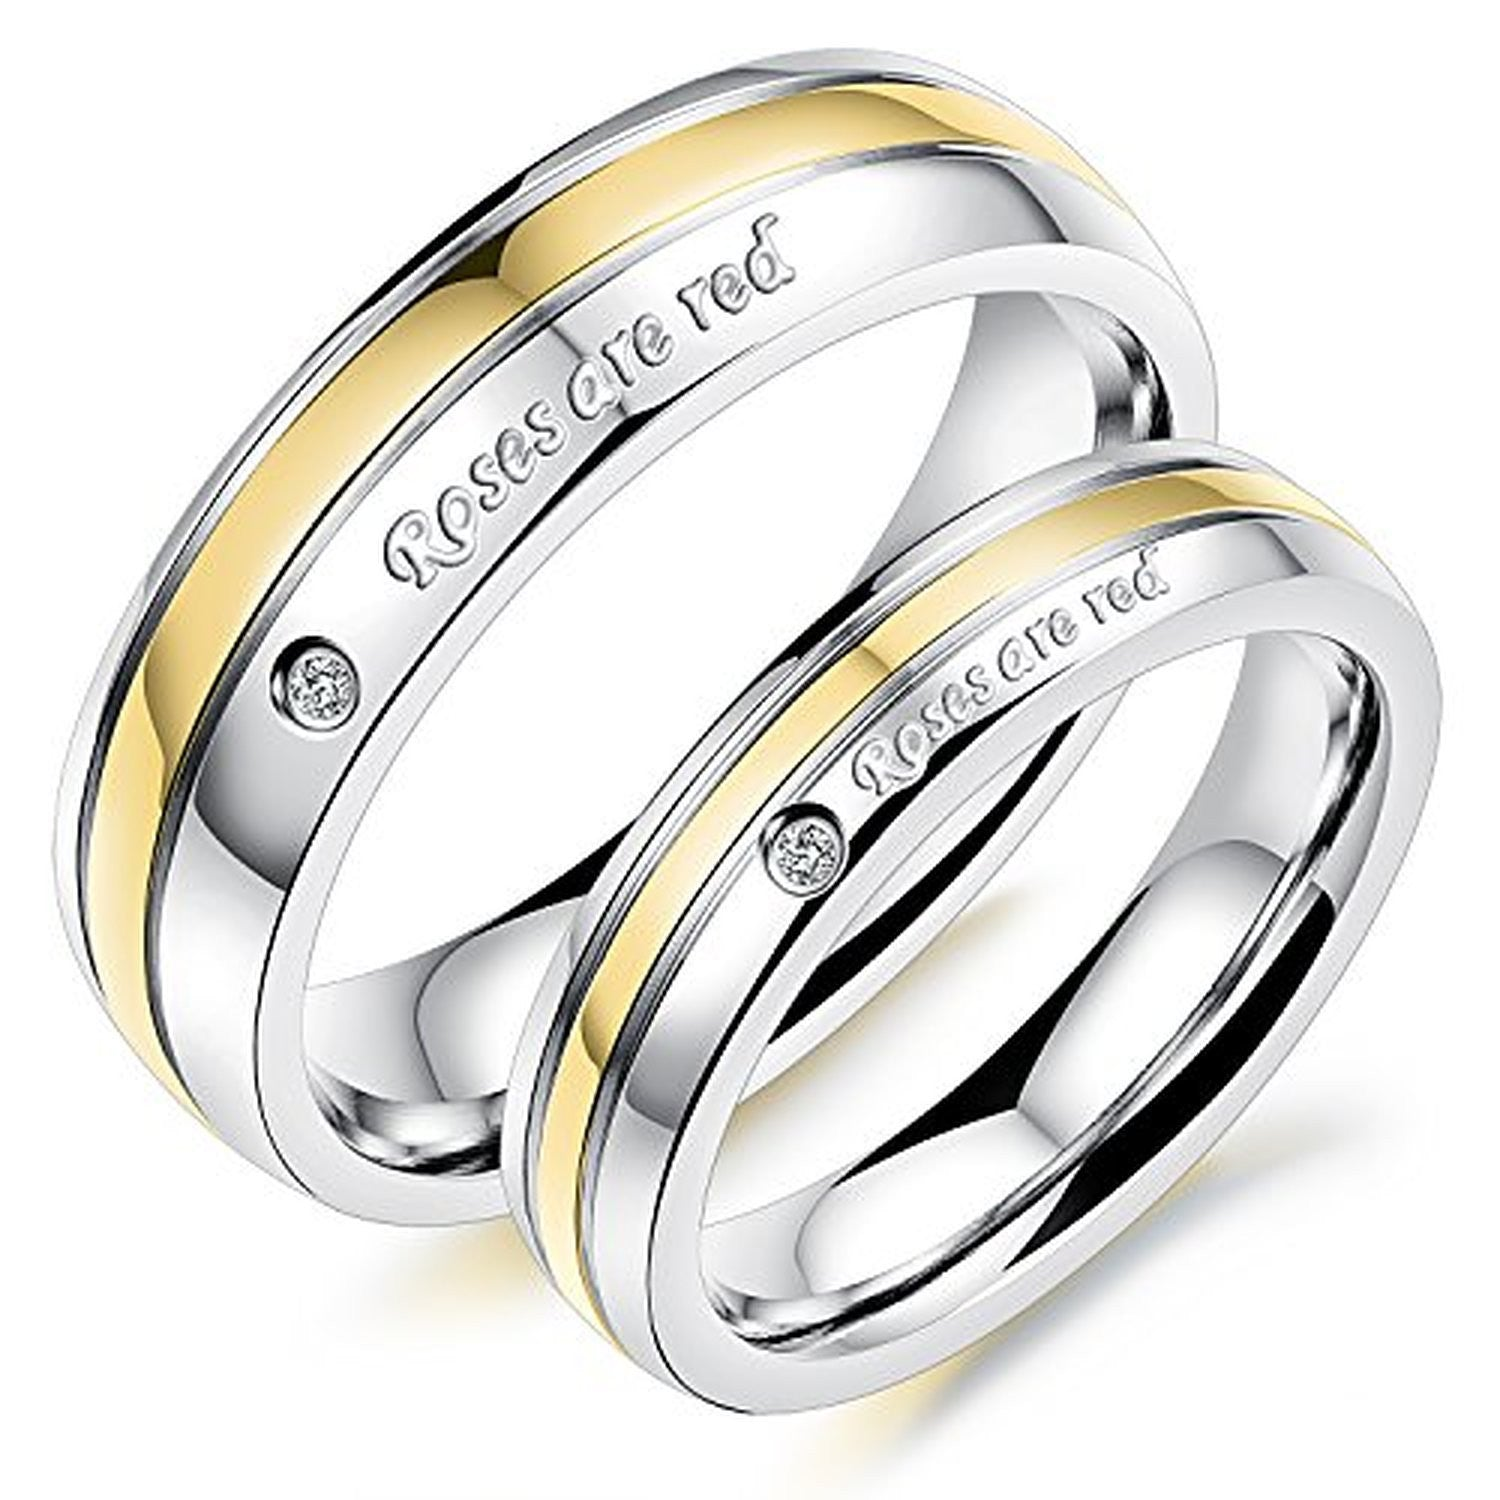 love evermaker steel rings black couple customize forever wedding evermarker personalized couples women titanium daily customized products